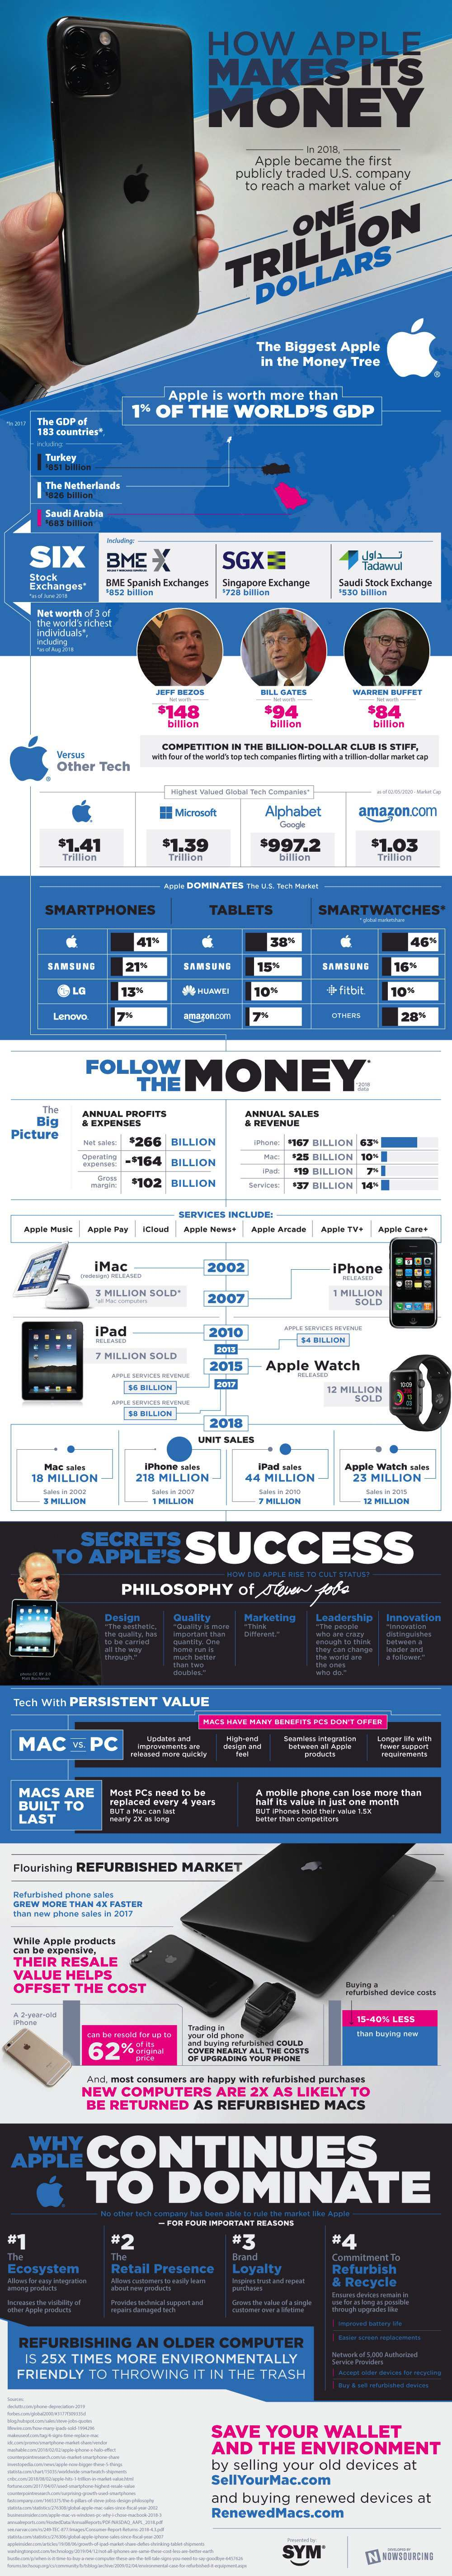 How Apple Makes Its Money